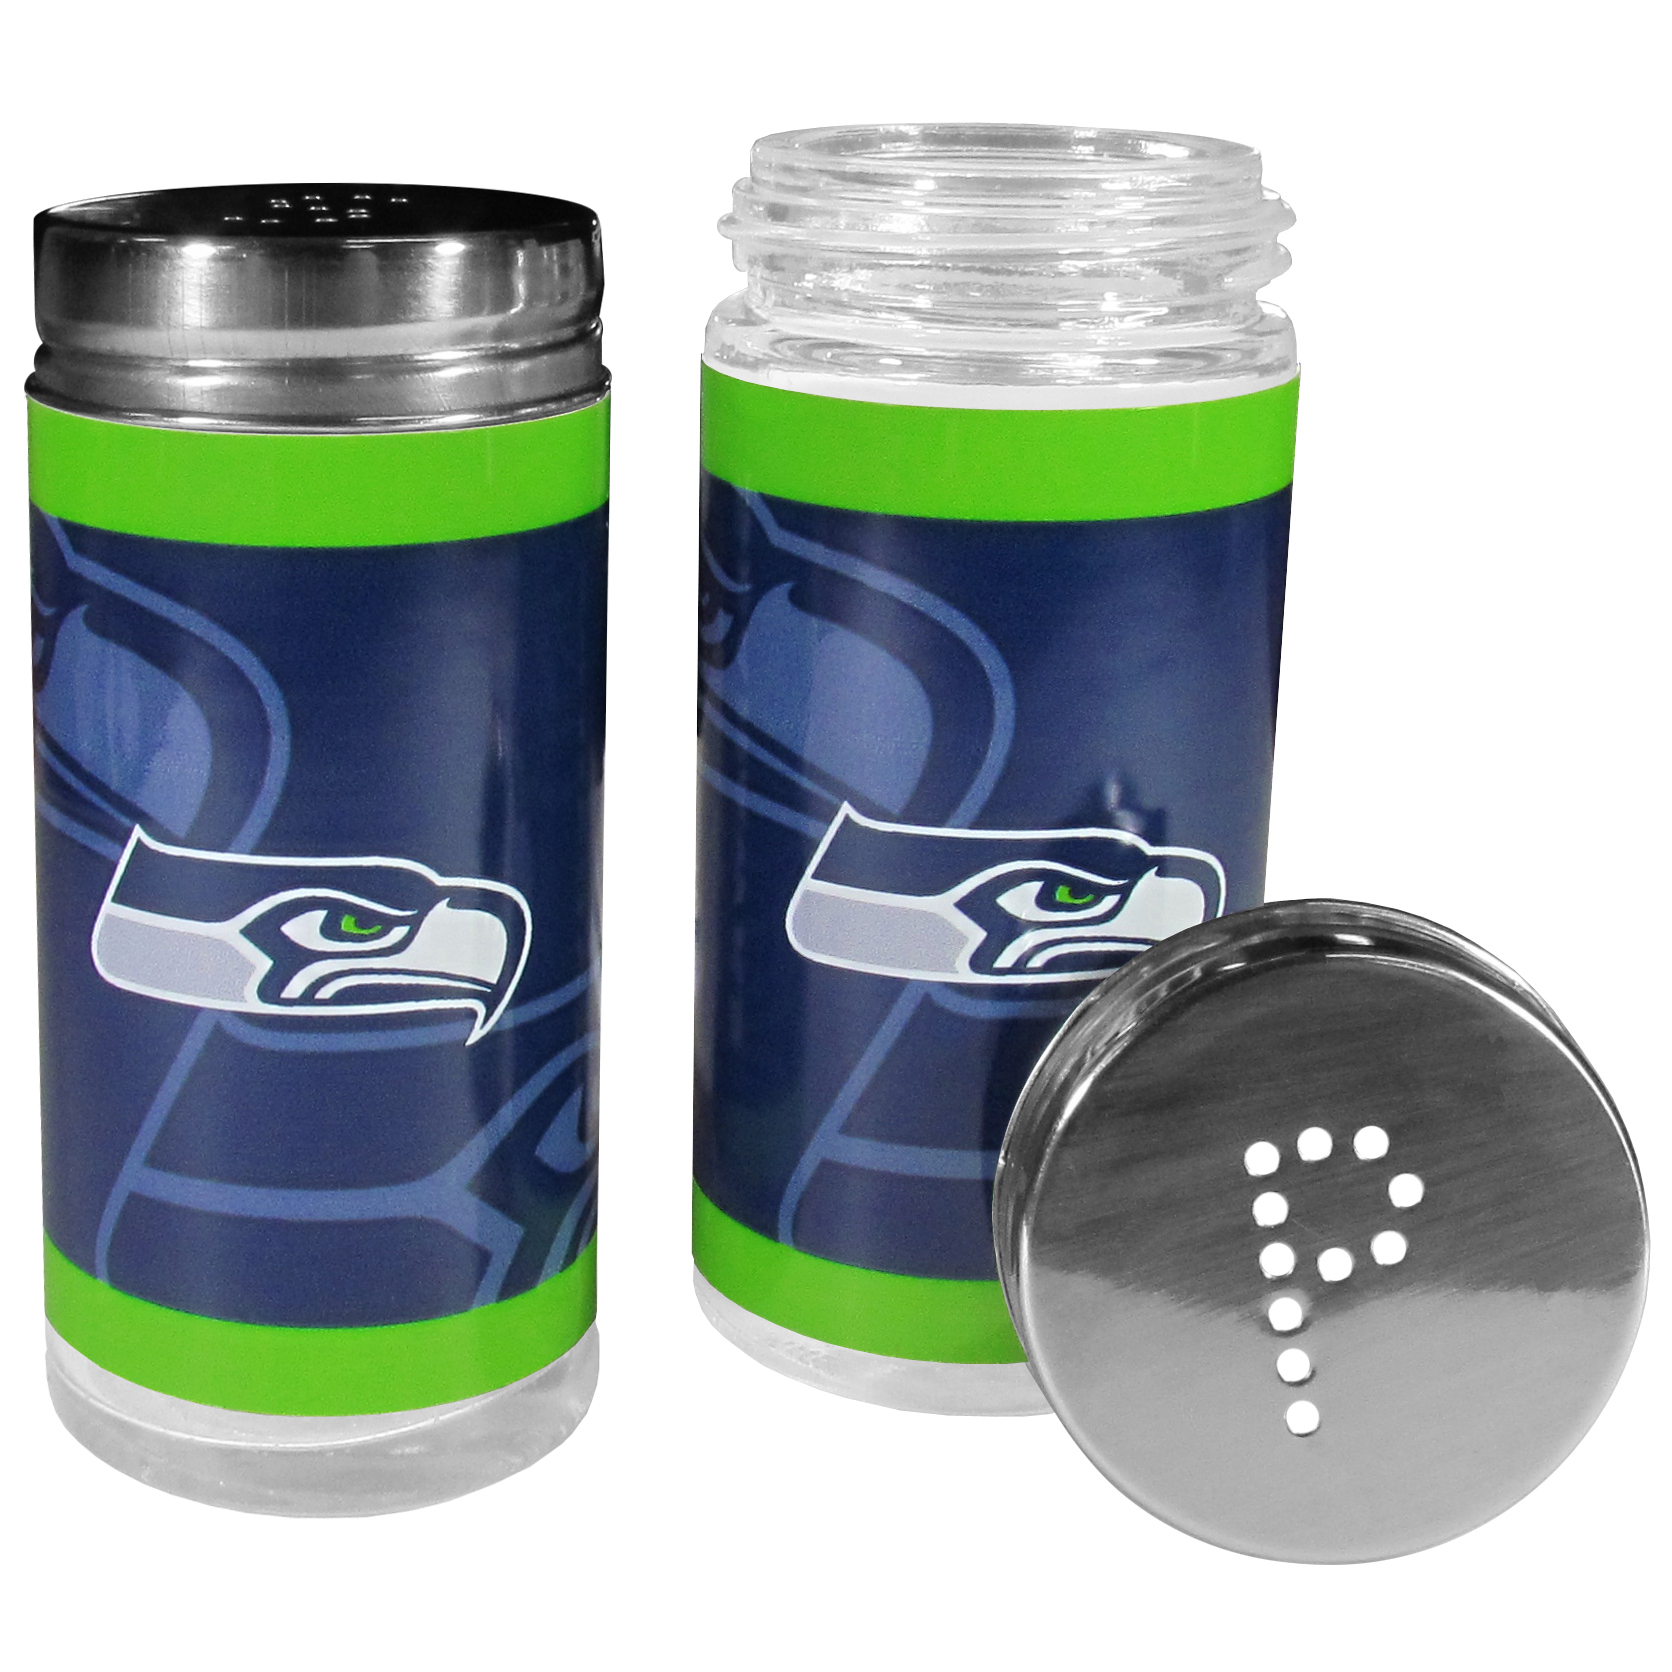 Seattle Seahawks Tailgater Salt and Pepper Shakers - No tailgate party is complete without your Seattle Seahawks salt & pepper shakers featuring bright team graphics. The glass shakers are 3.75 inches tall and the screw top lids have holes that spell out P and S. These team shakers are a great grill accessory whether you are barbecuing on the patio, picnicing or having a game day party.